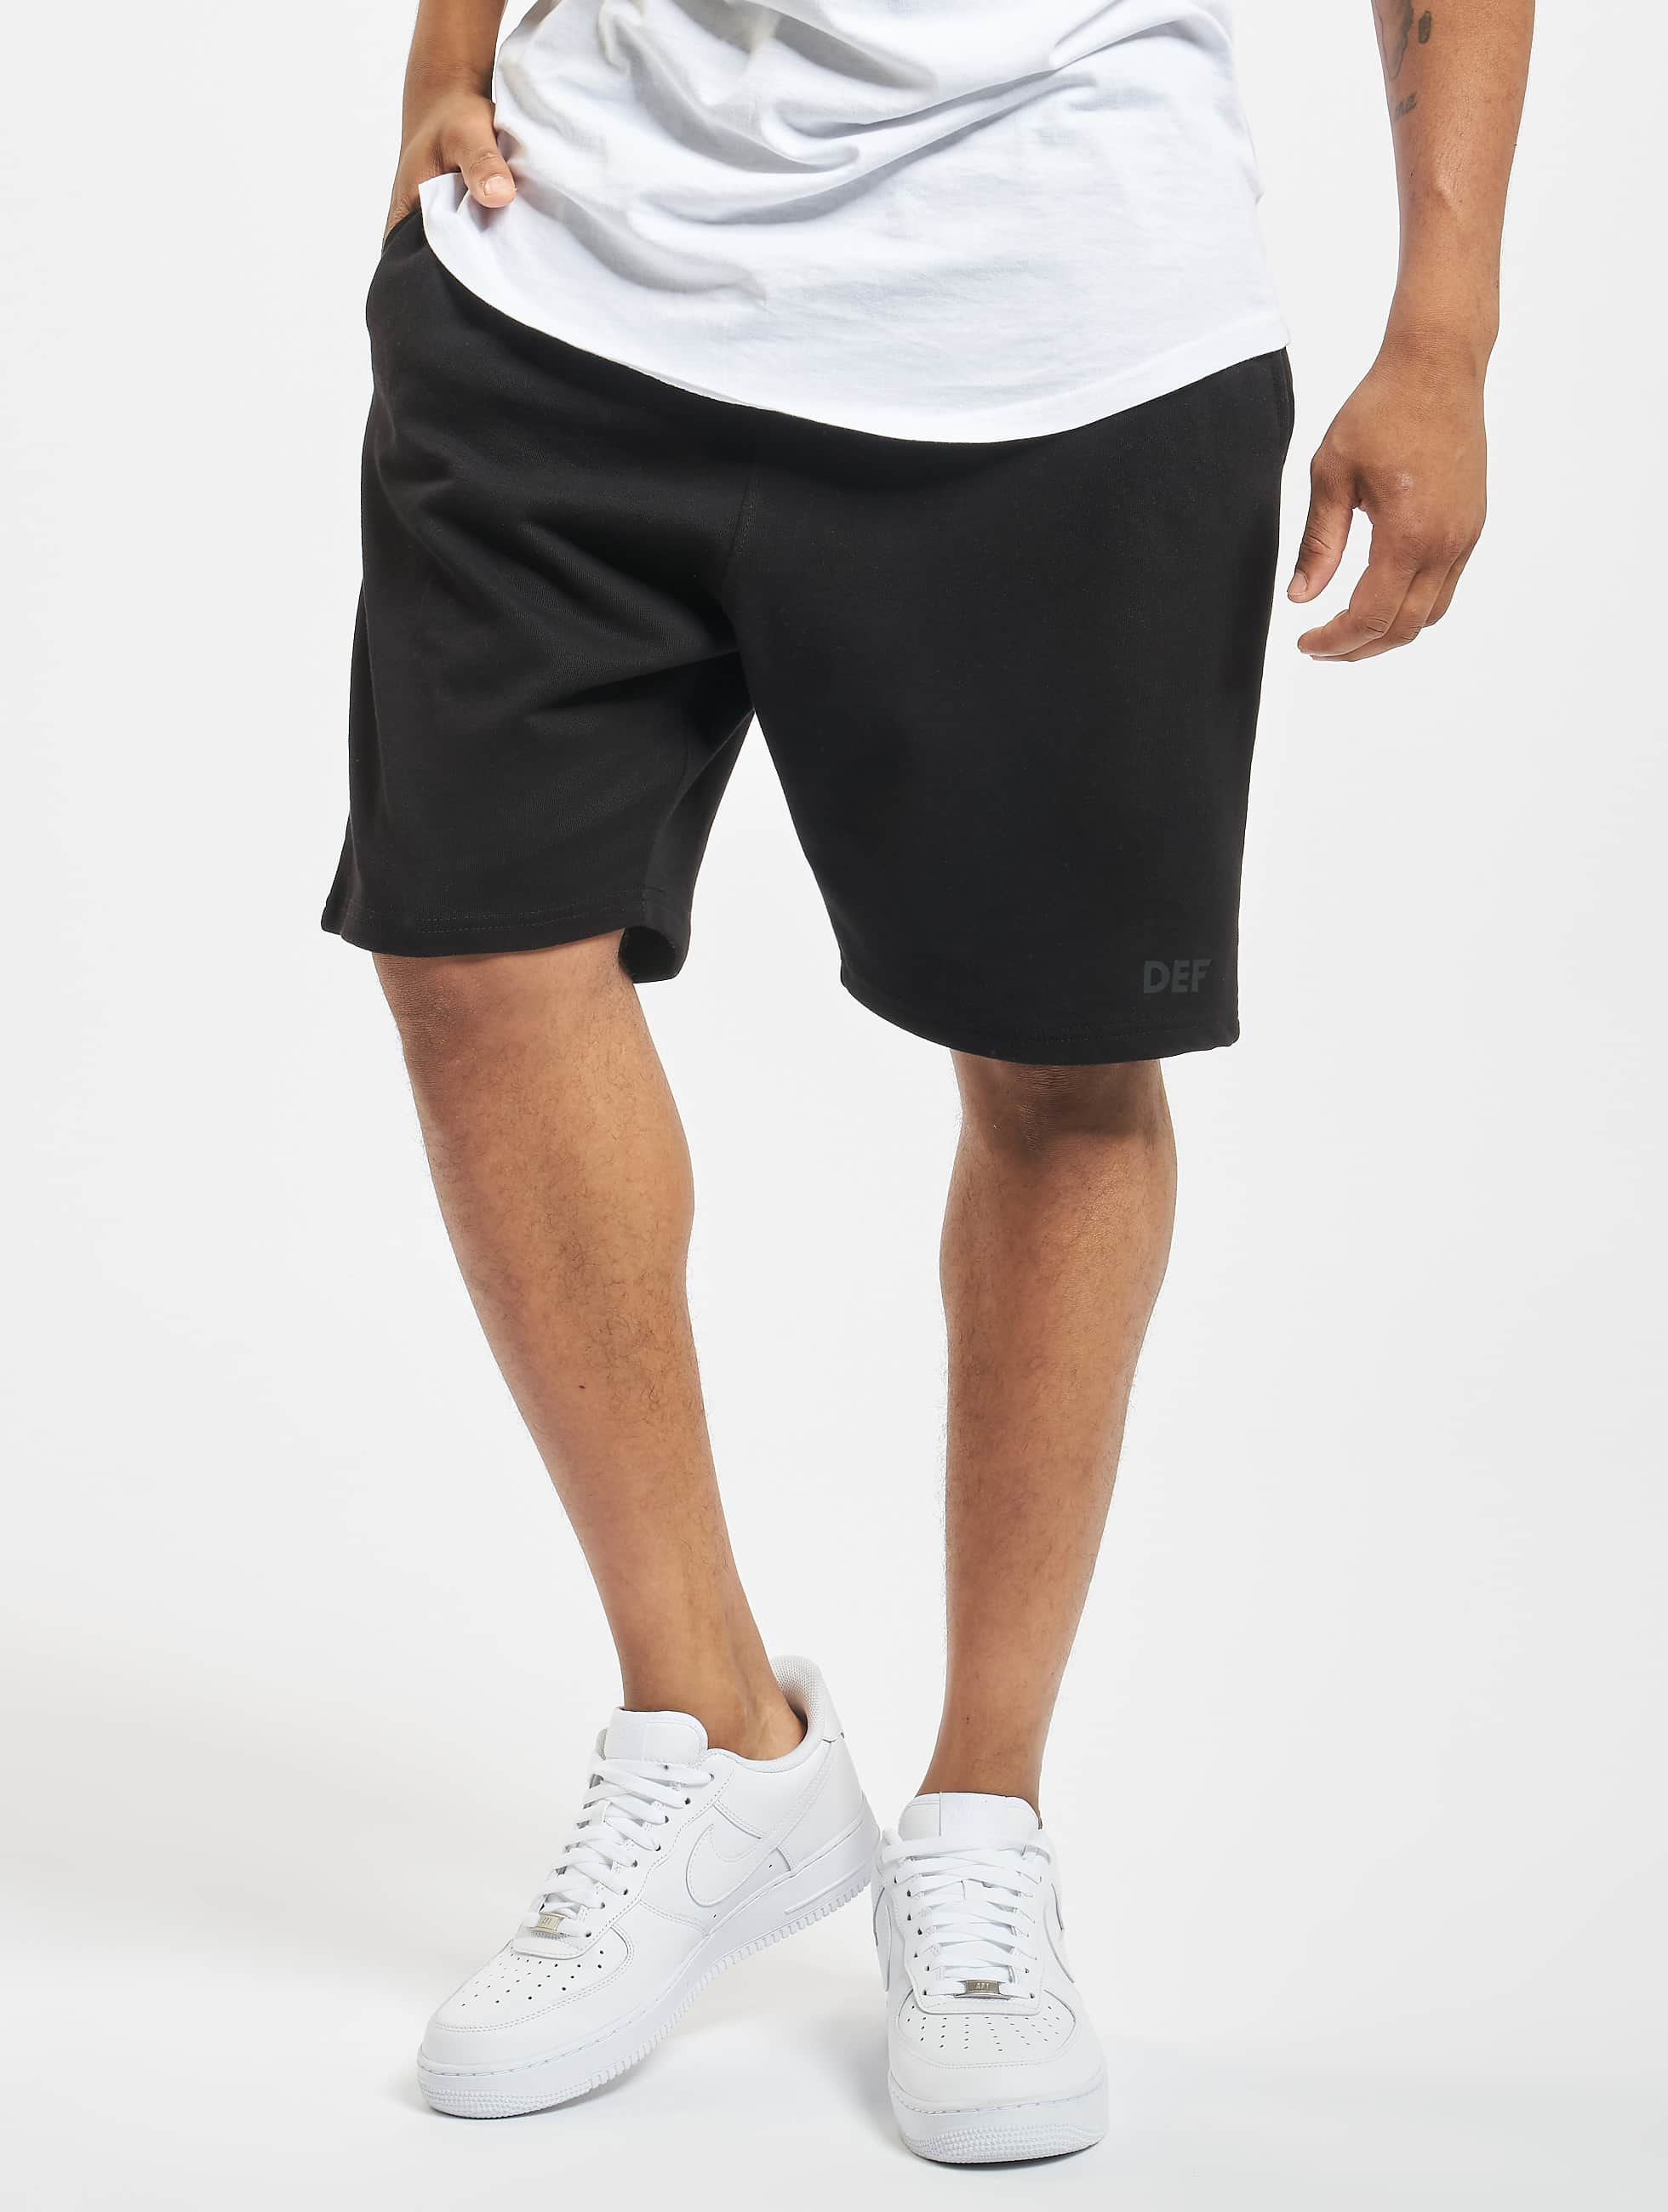 DEF / Short Bobi in black S